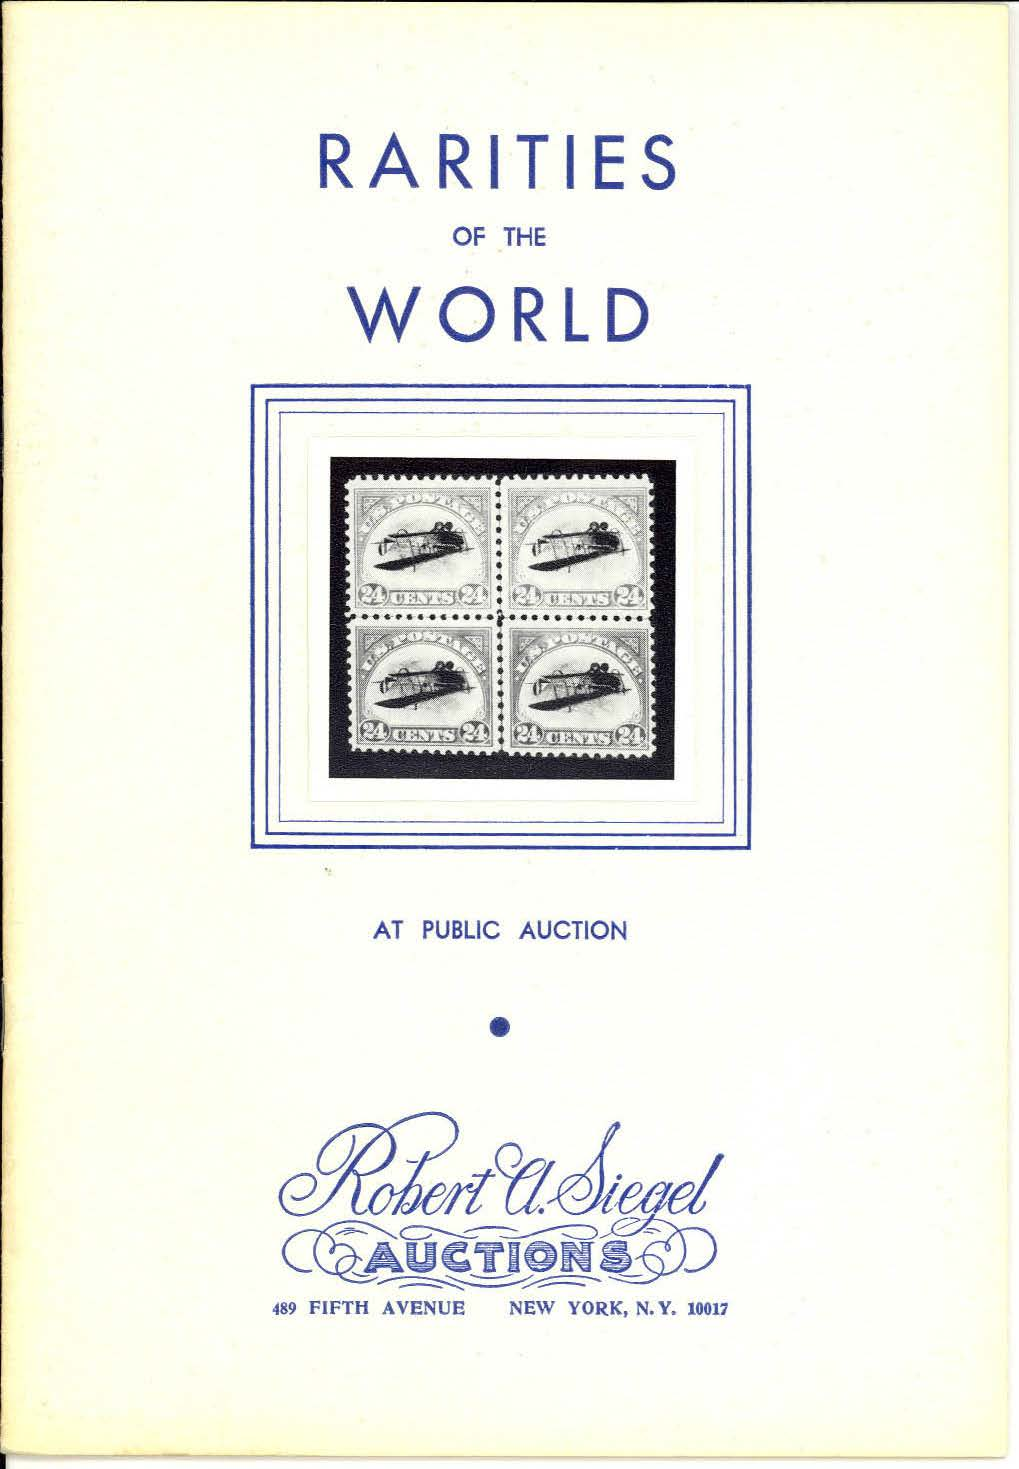 The first Rarities of the World sale held by Siegel on February 27, 1964 — Siegel Auction Galleries